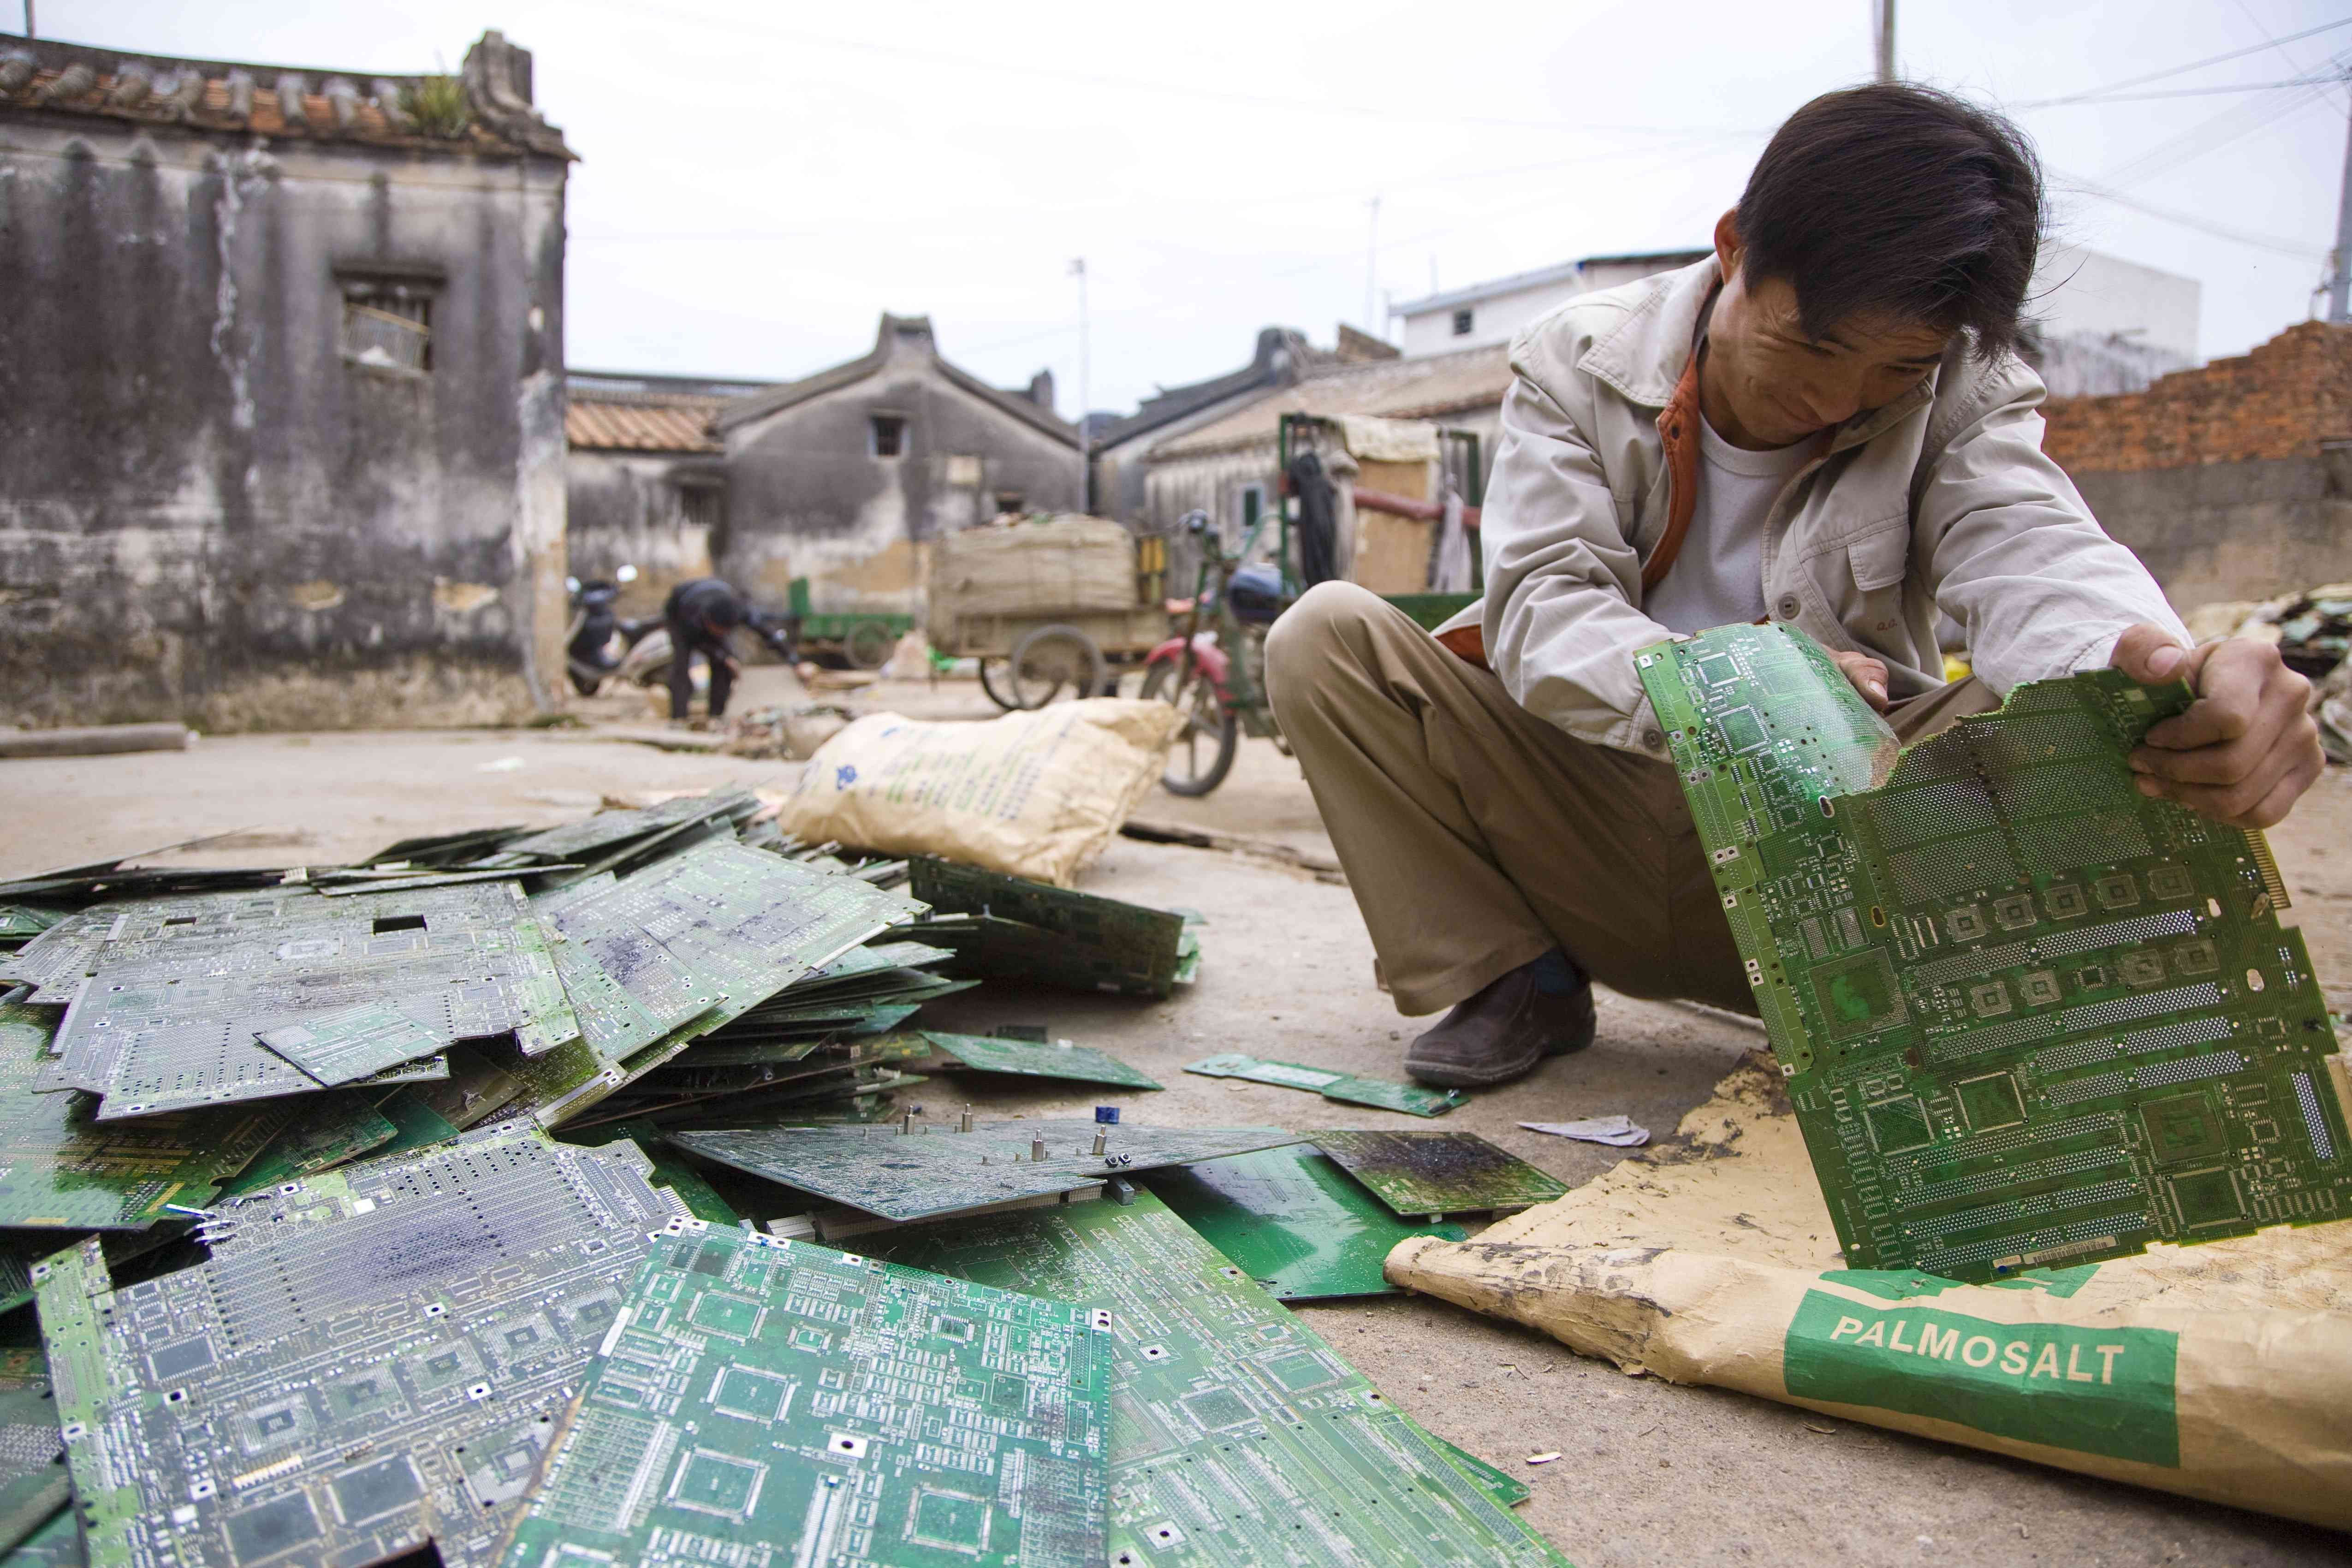 A man strips e-waste outside in China.